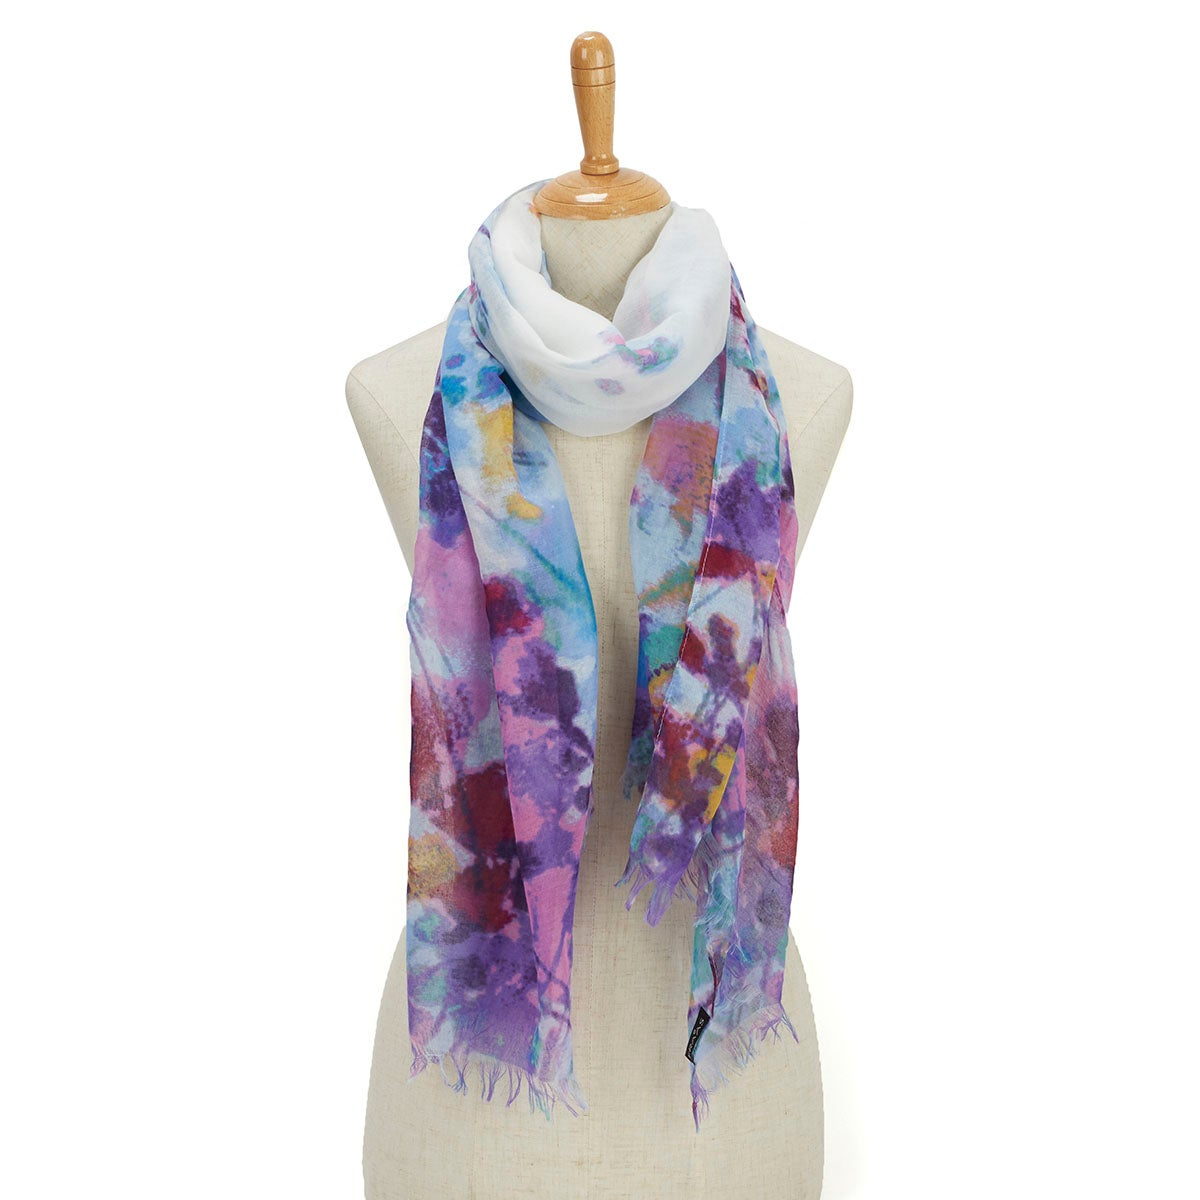 Women's GAUCHO GIRLS WATER FLORAL turq scarves